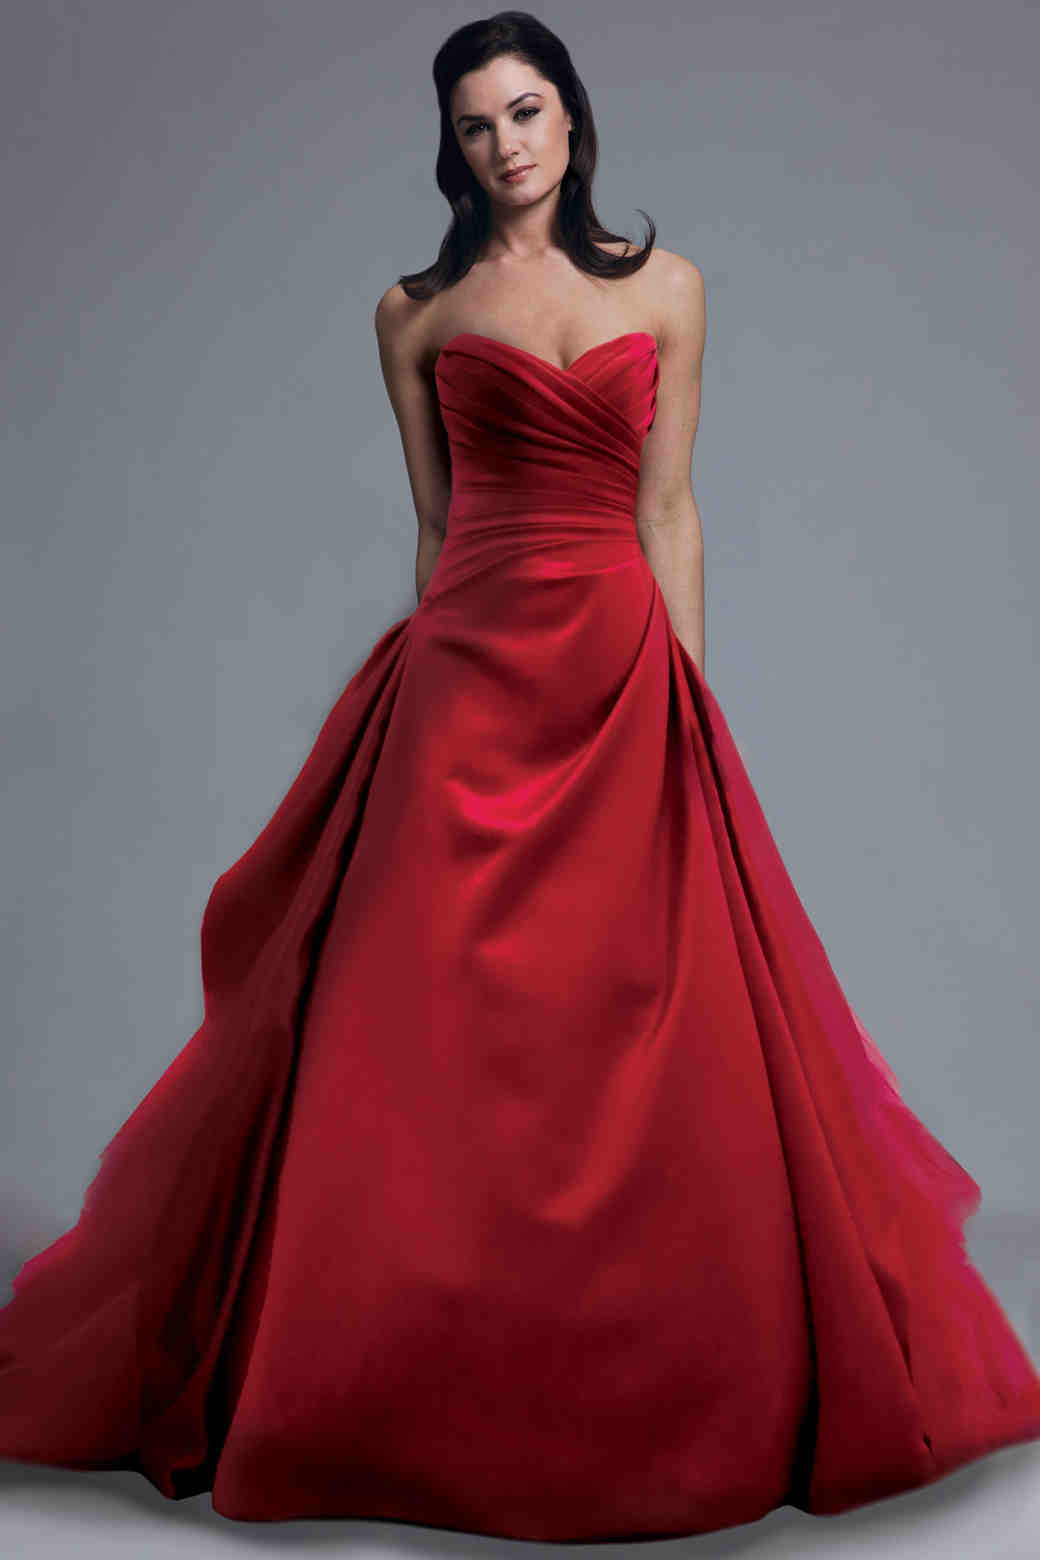 Red wedding dresses spring 2013 bridal fashion week for Red dresses for a wedding